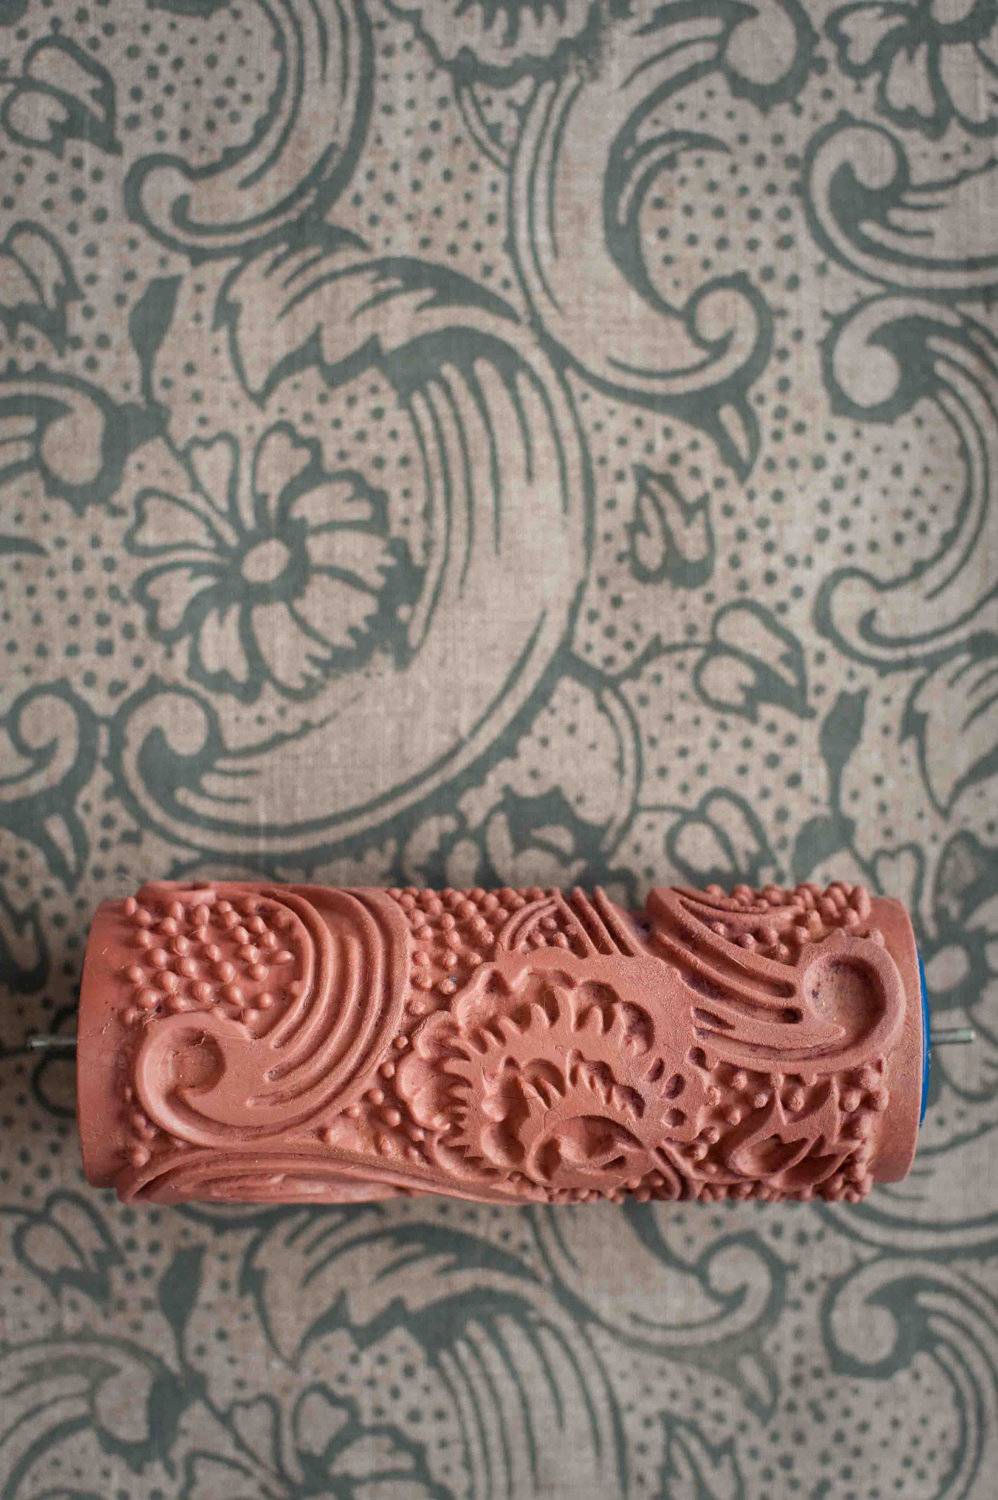 The Paint Roller With An Interesting Pattern Namablog Com Interiors Inside Ideas Interiors design about Everything [magnanprojects.com]